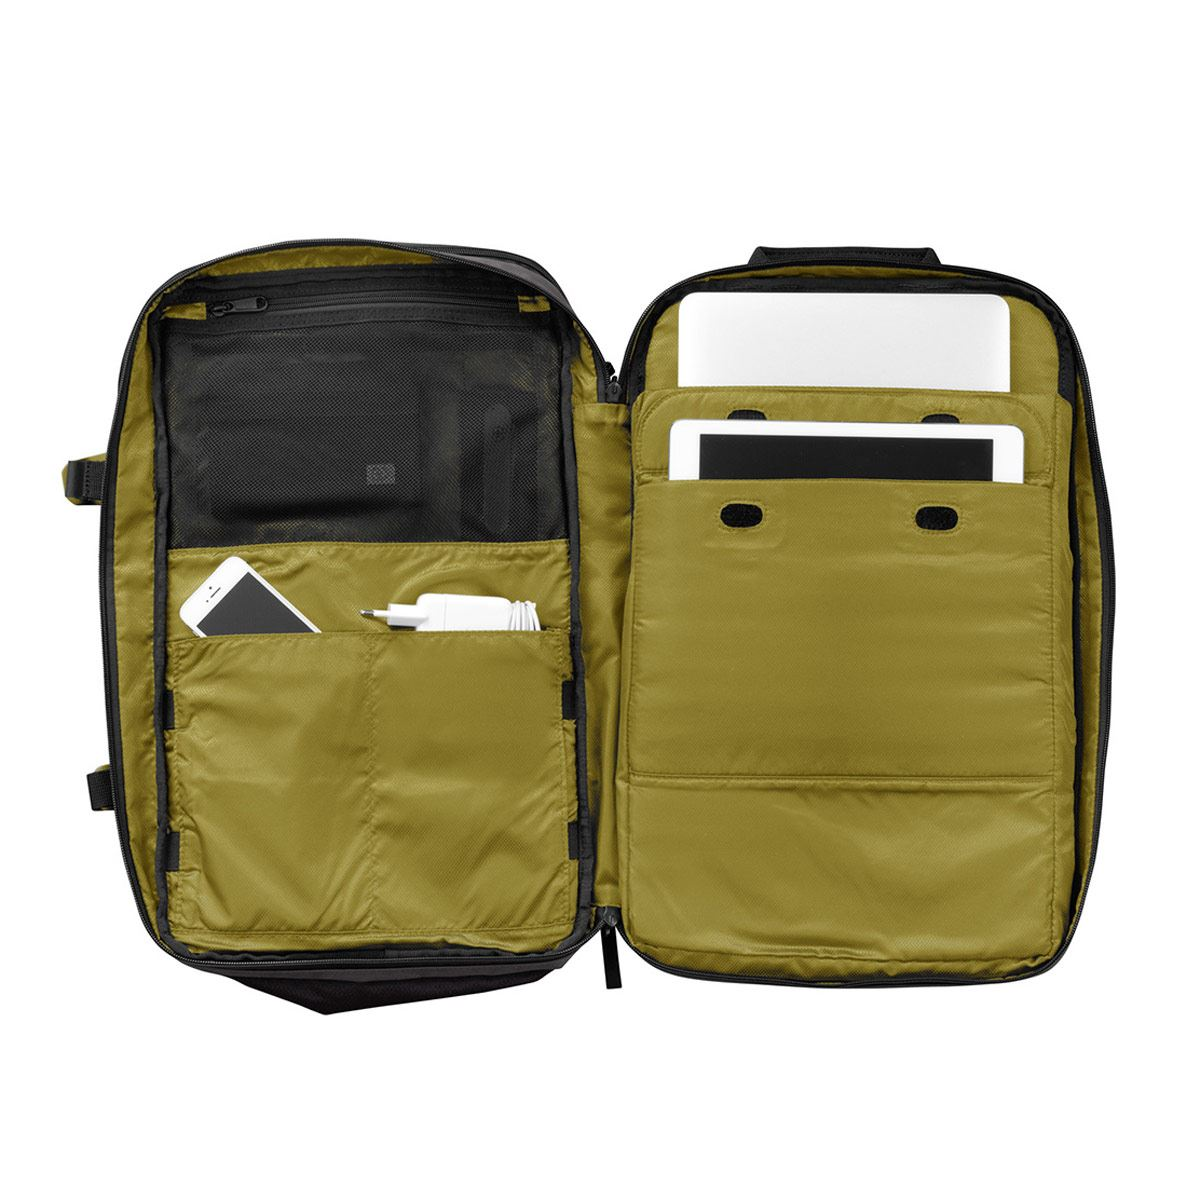 Vx Touring, Laptop Backpack 17, Anthracite